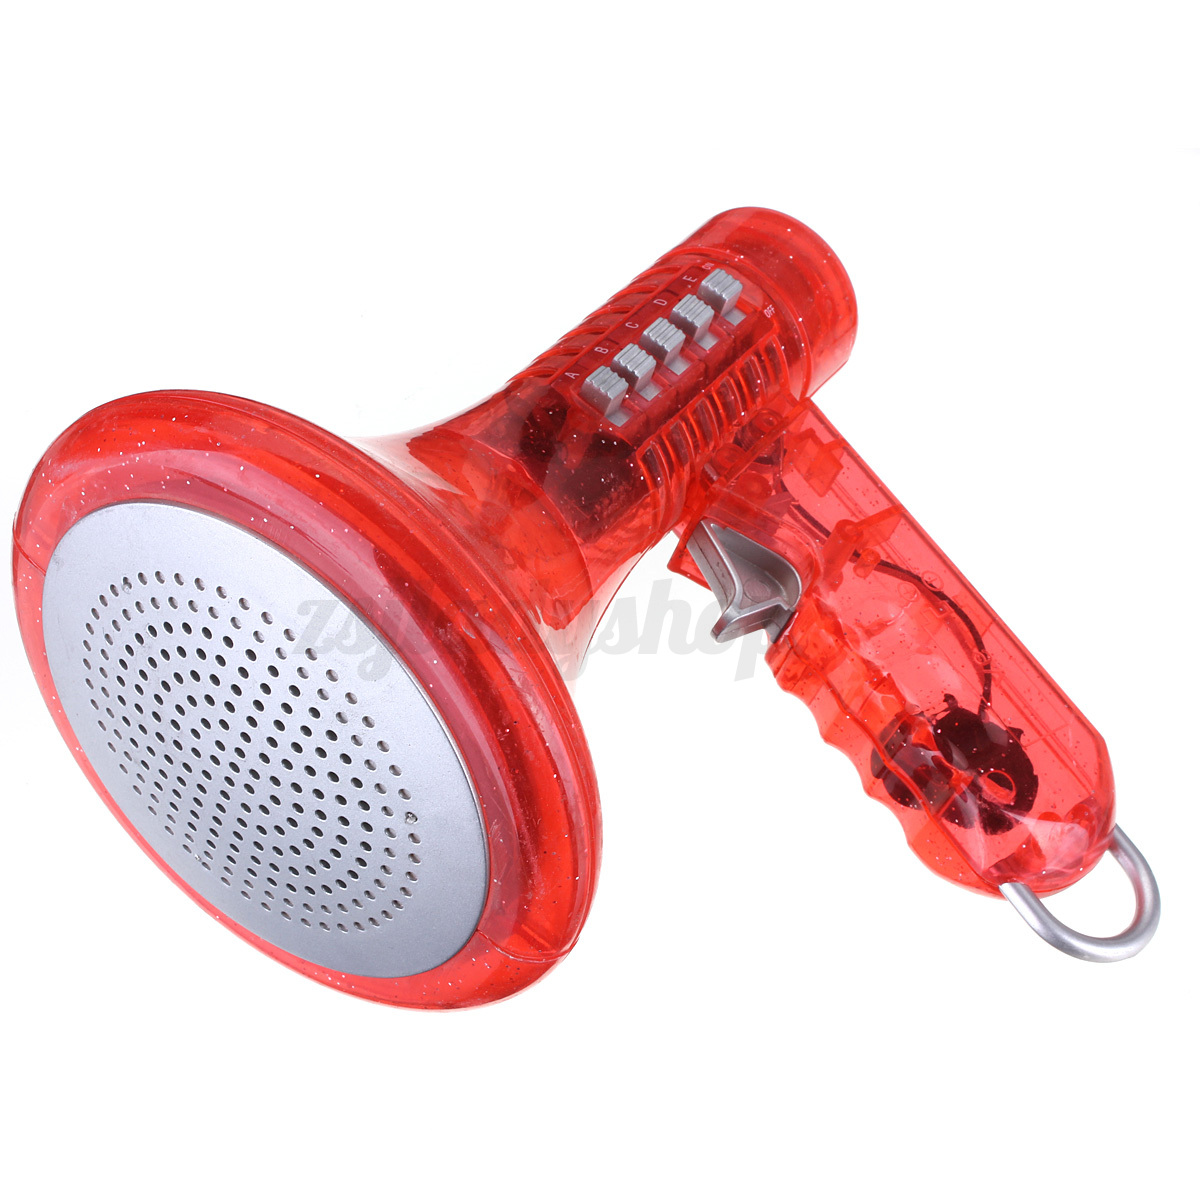 10-Sound-Effects-Voice-Changer-Robot-Loud-LED-Superbright-Children-Kid-Toy-Party